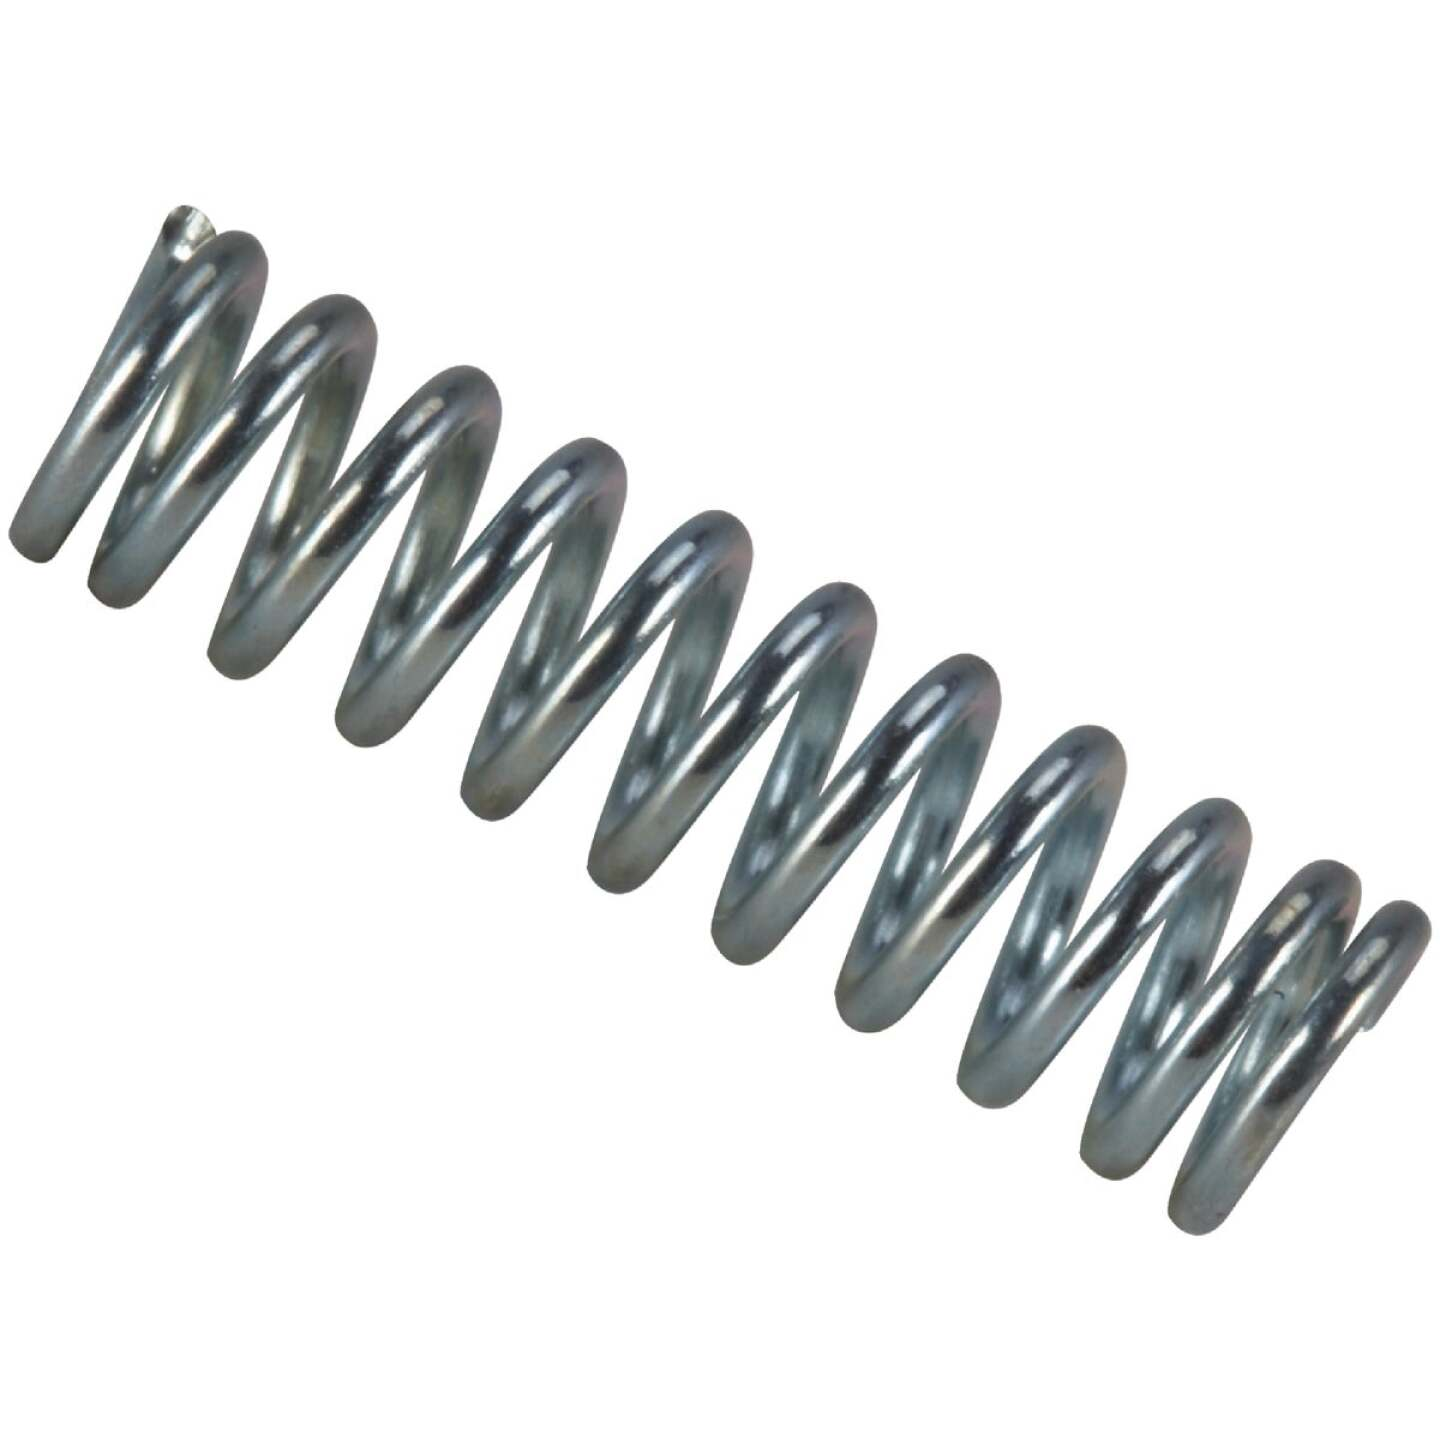 Century Spring 2-1/4 In. x 3/8 In. Compression Spring (2 Count) Image 1